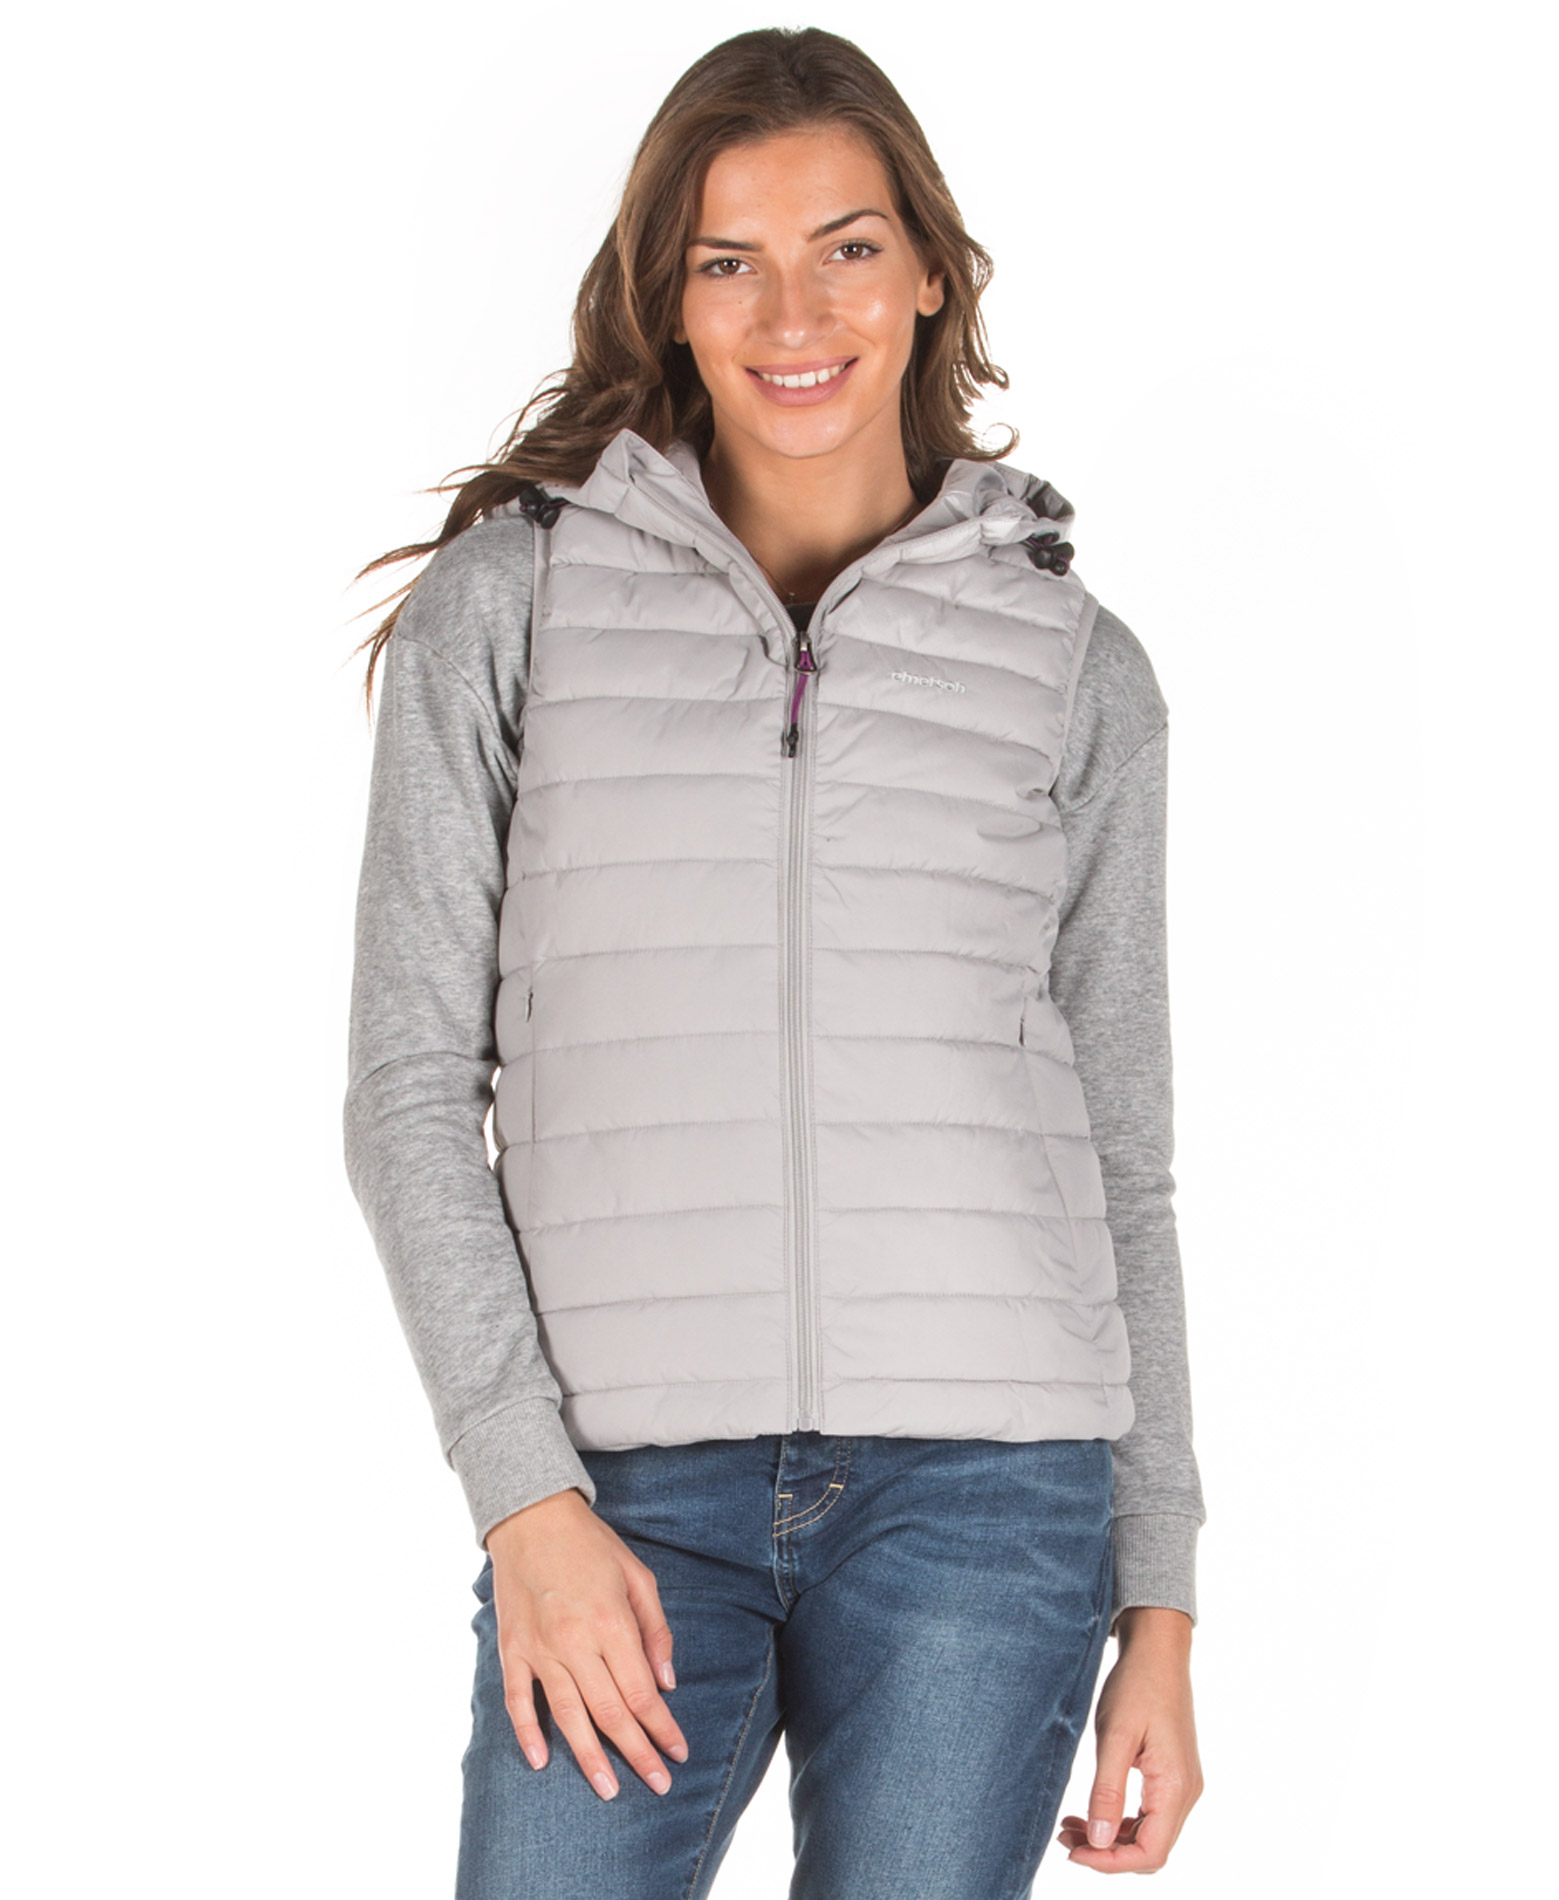 EMERSON HOODED FAKE DOWN QUILTED VEST JACKET 192.EW10.114-RPS ICE Γκρί